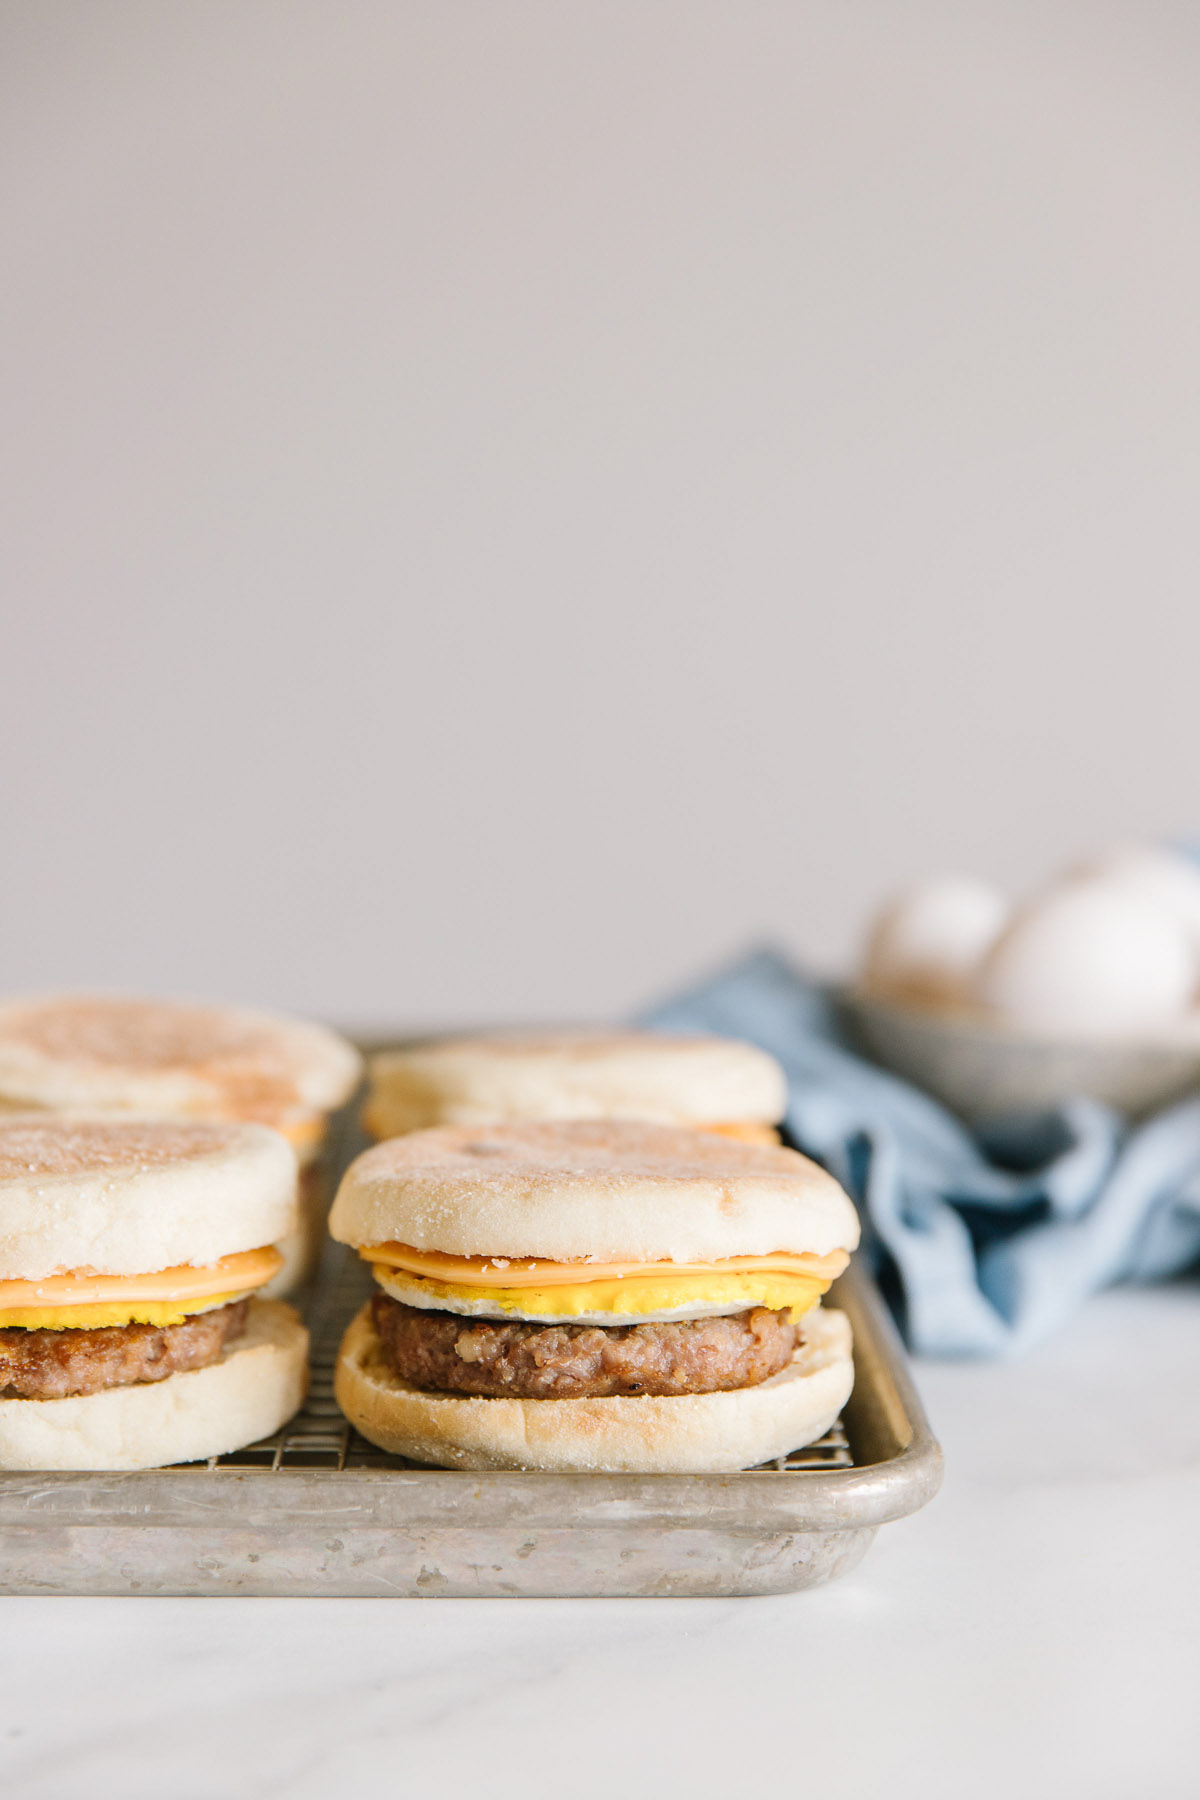 A pan with a wire tray with freezer breakfast sandwiches on it with a bowl of eggs on the side.